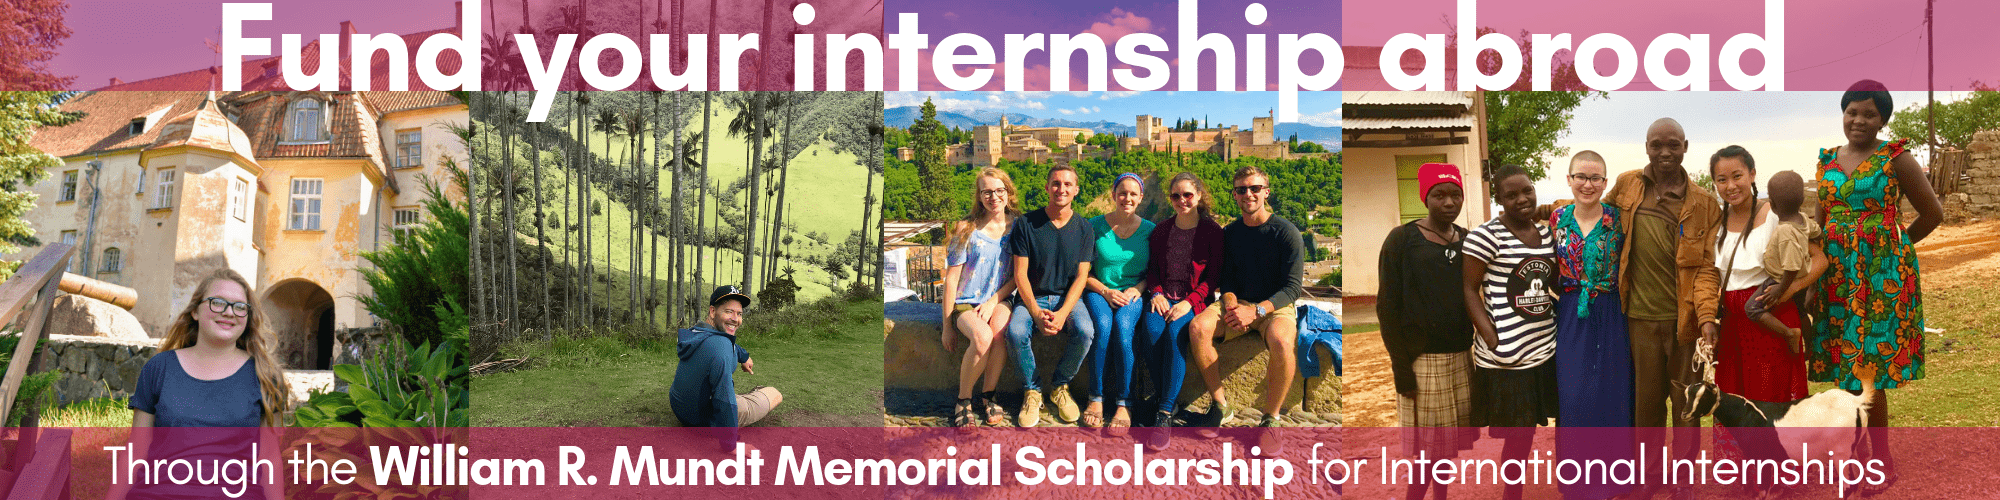 Fully fund your internship abroad through the William R. Mundt Scholarship for International Internships.